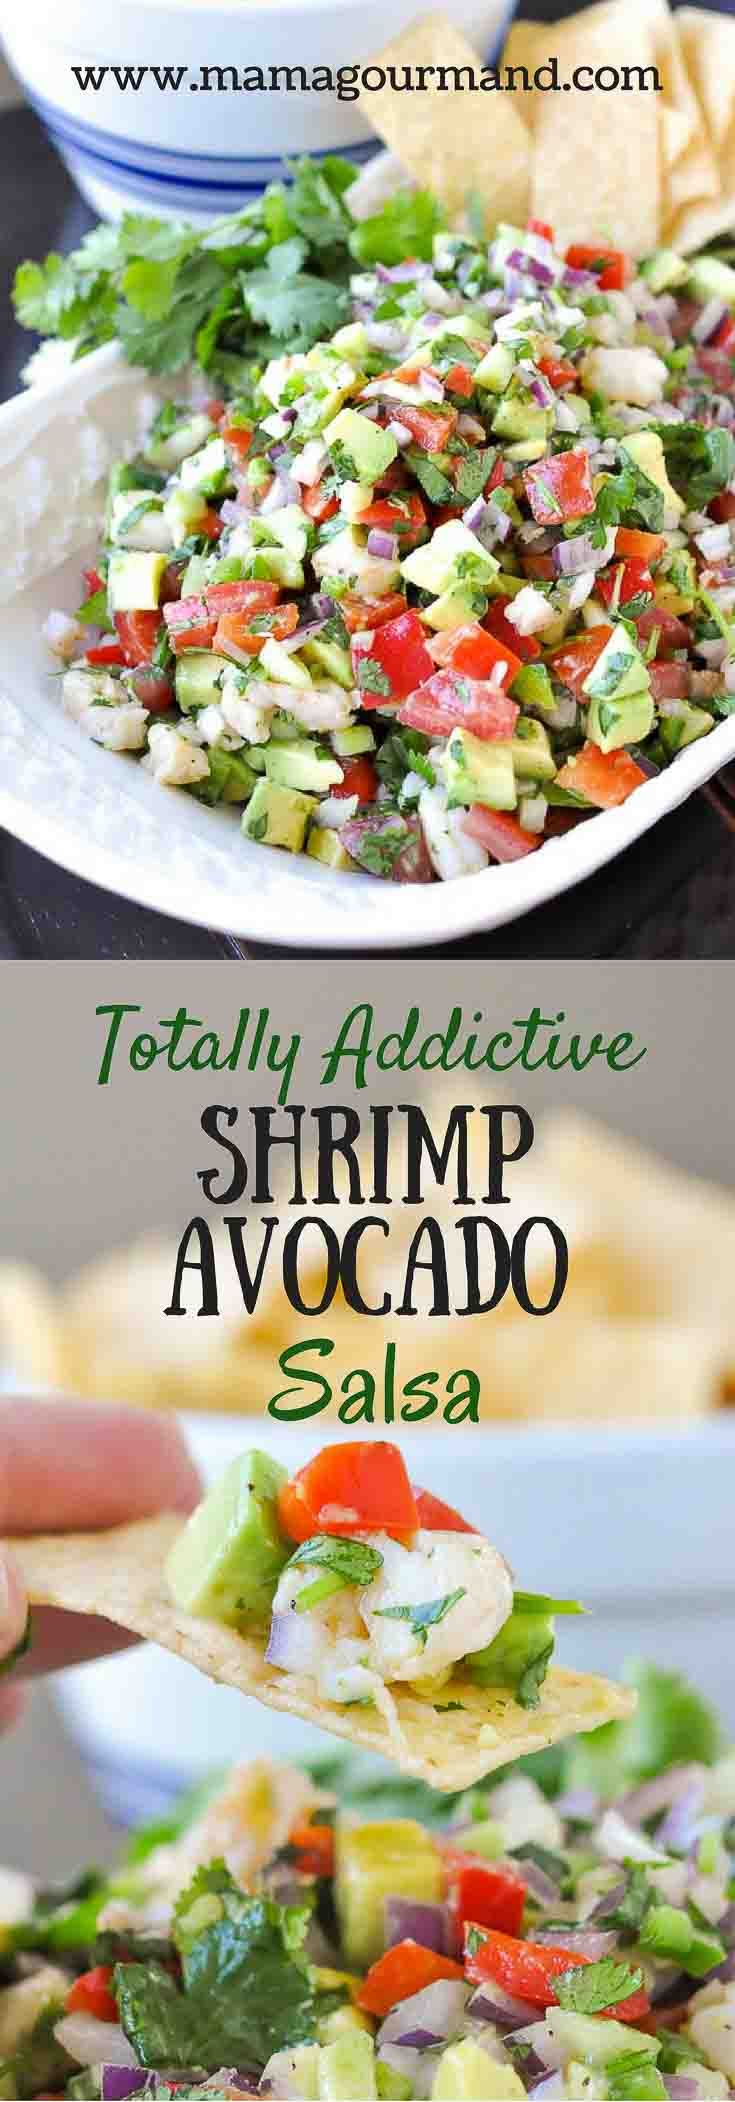 Totally Addictive Shrimp Avocado Salsa uses fresh garden ingredients and tosses together to make one surprisingly flavorful and addictive appetizer. http://www.mamagourmand.com  via @mamagourmand